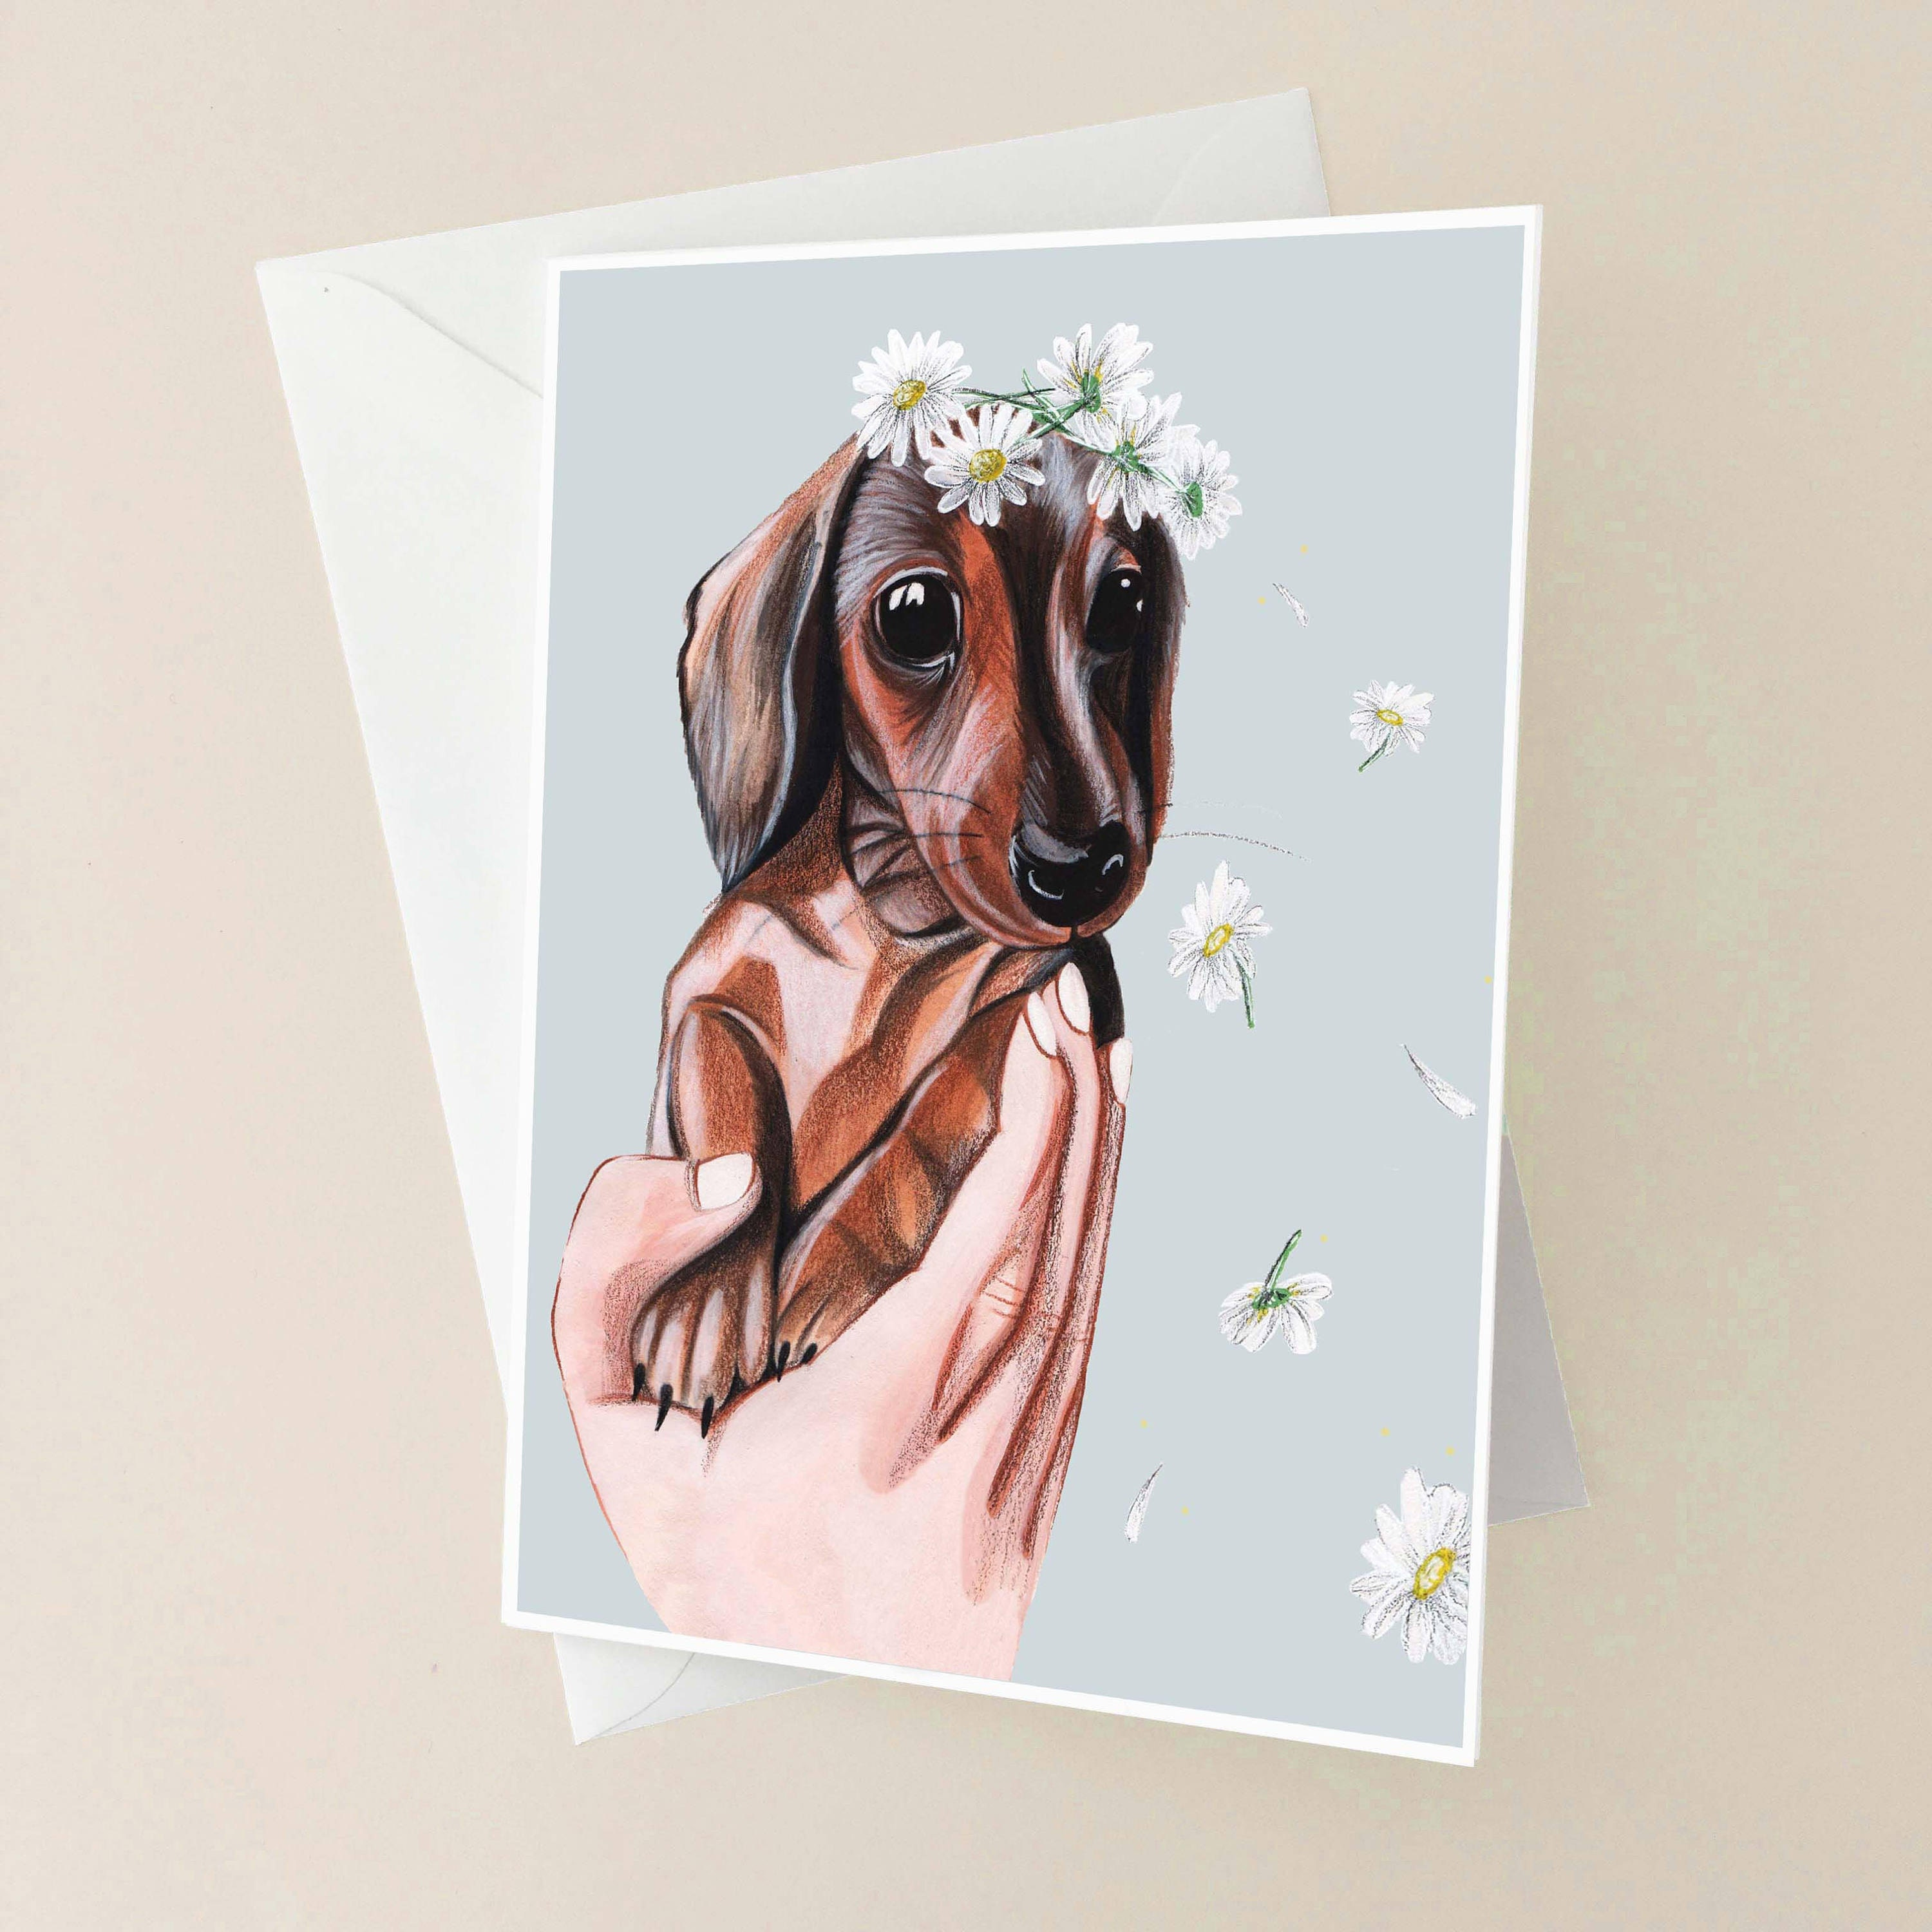 Dachshund Puppy Illustrated Greeting Card Cute Puppy Painted